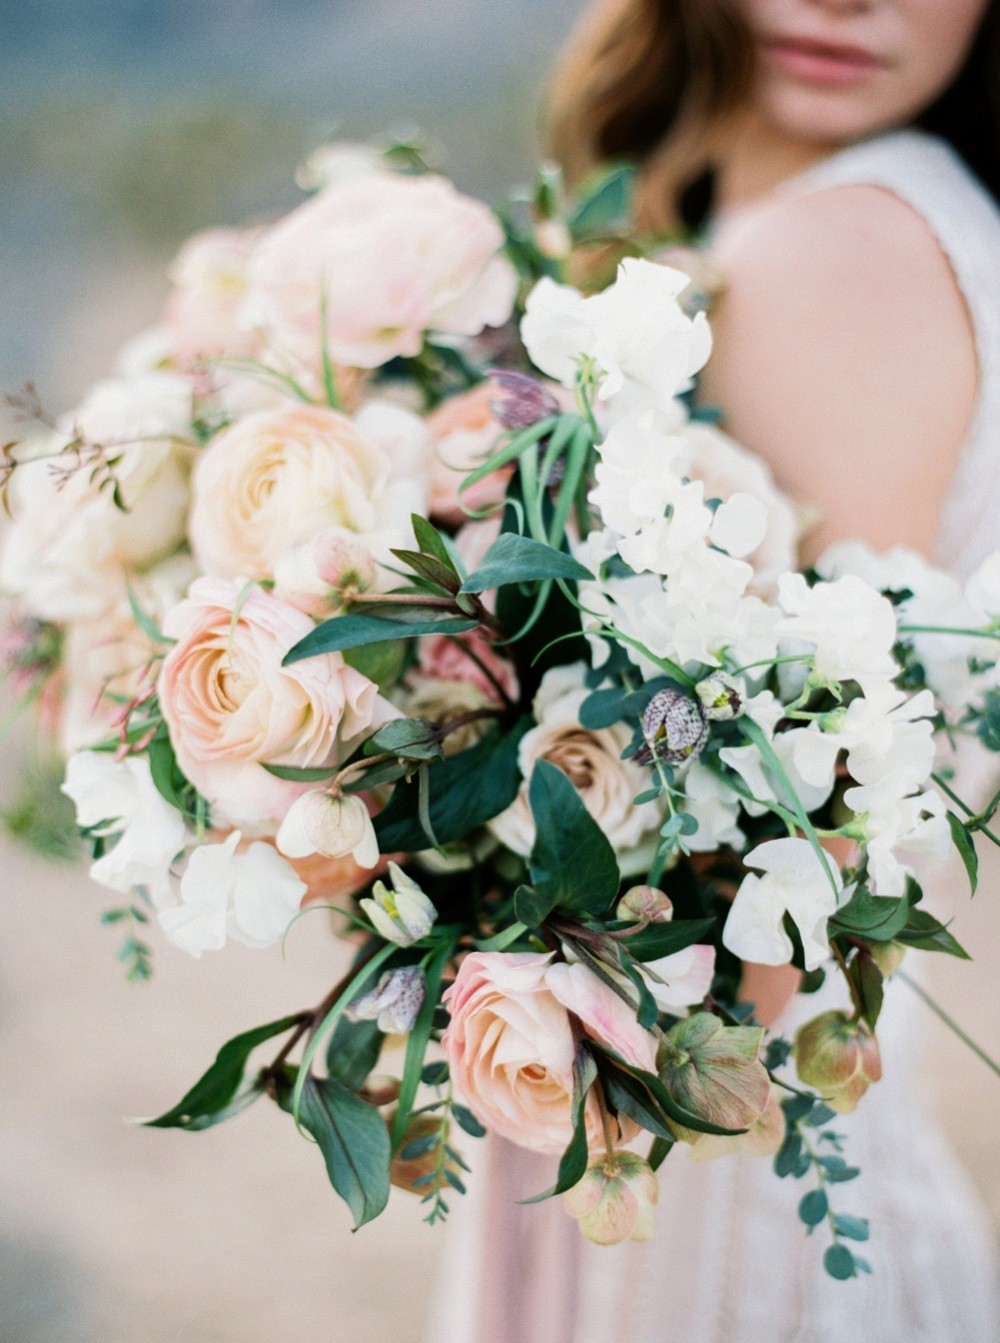 Neutral Blush, Taupe, and Ivory Wedding Palette Inspiration